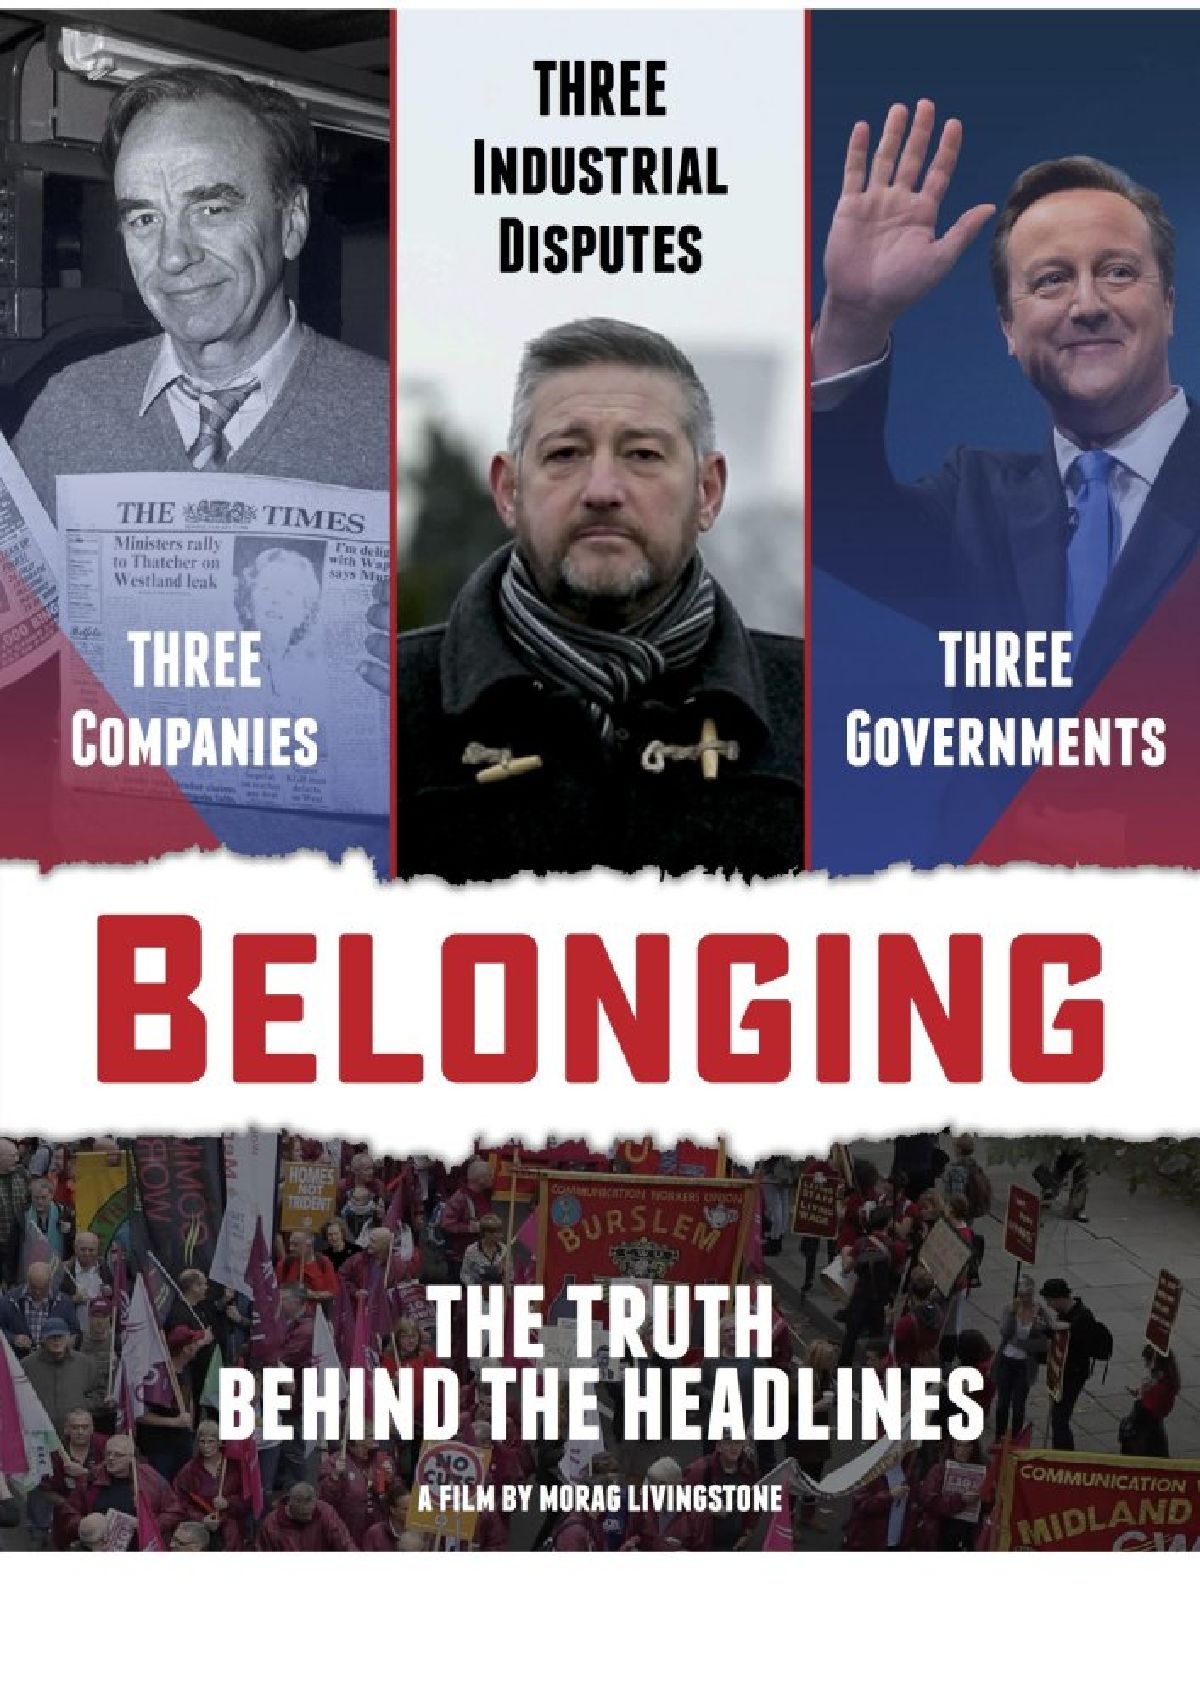 'Belonging: The Truth Behind the Headlines' movie poster